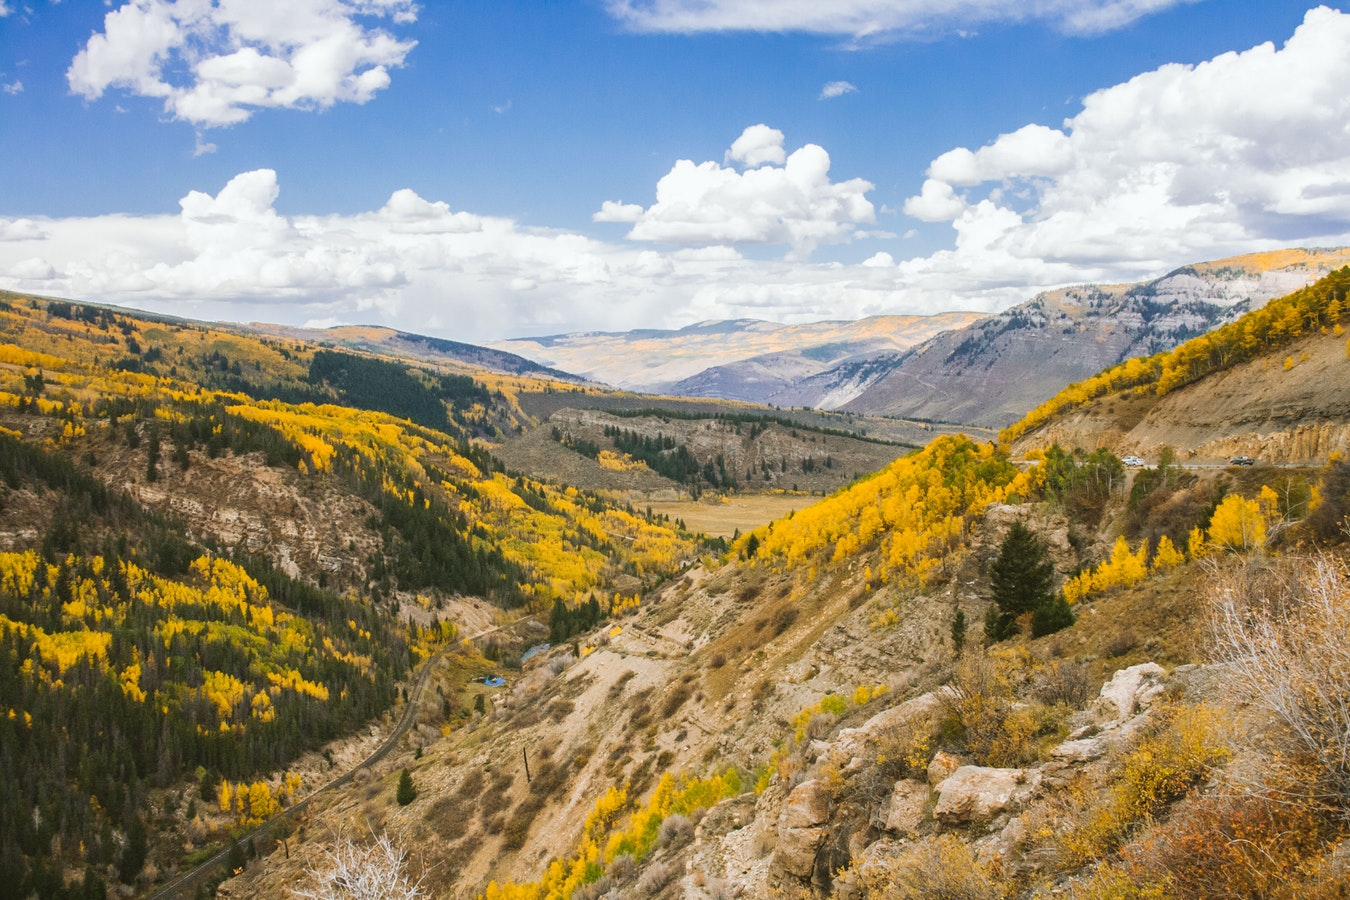 Independence pass fall colors colorado  | Real Estate and Lifestyle in Northern Colorado, a blog by Joanna Gyrath, Realtor | Search homes in Fort Collins, Loveland, Greeley, Windsor, Longmont, Laporte, Wellington, Timnath, Severance, Eaton, Evans, Livermore, Red Feather Lakes